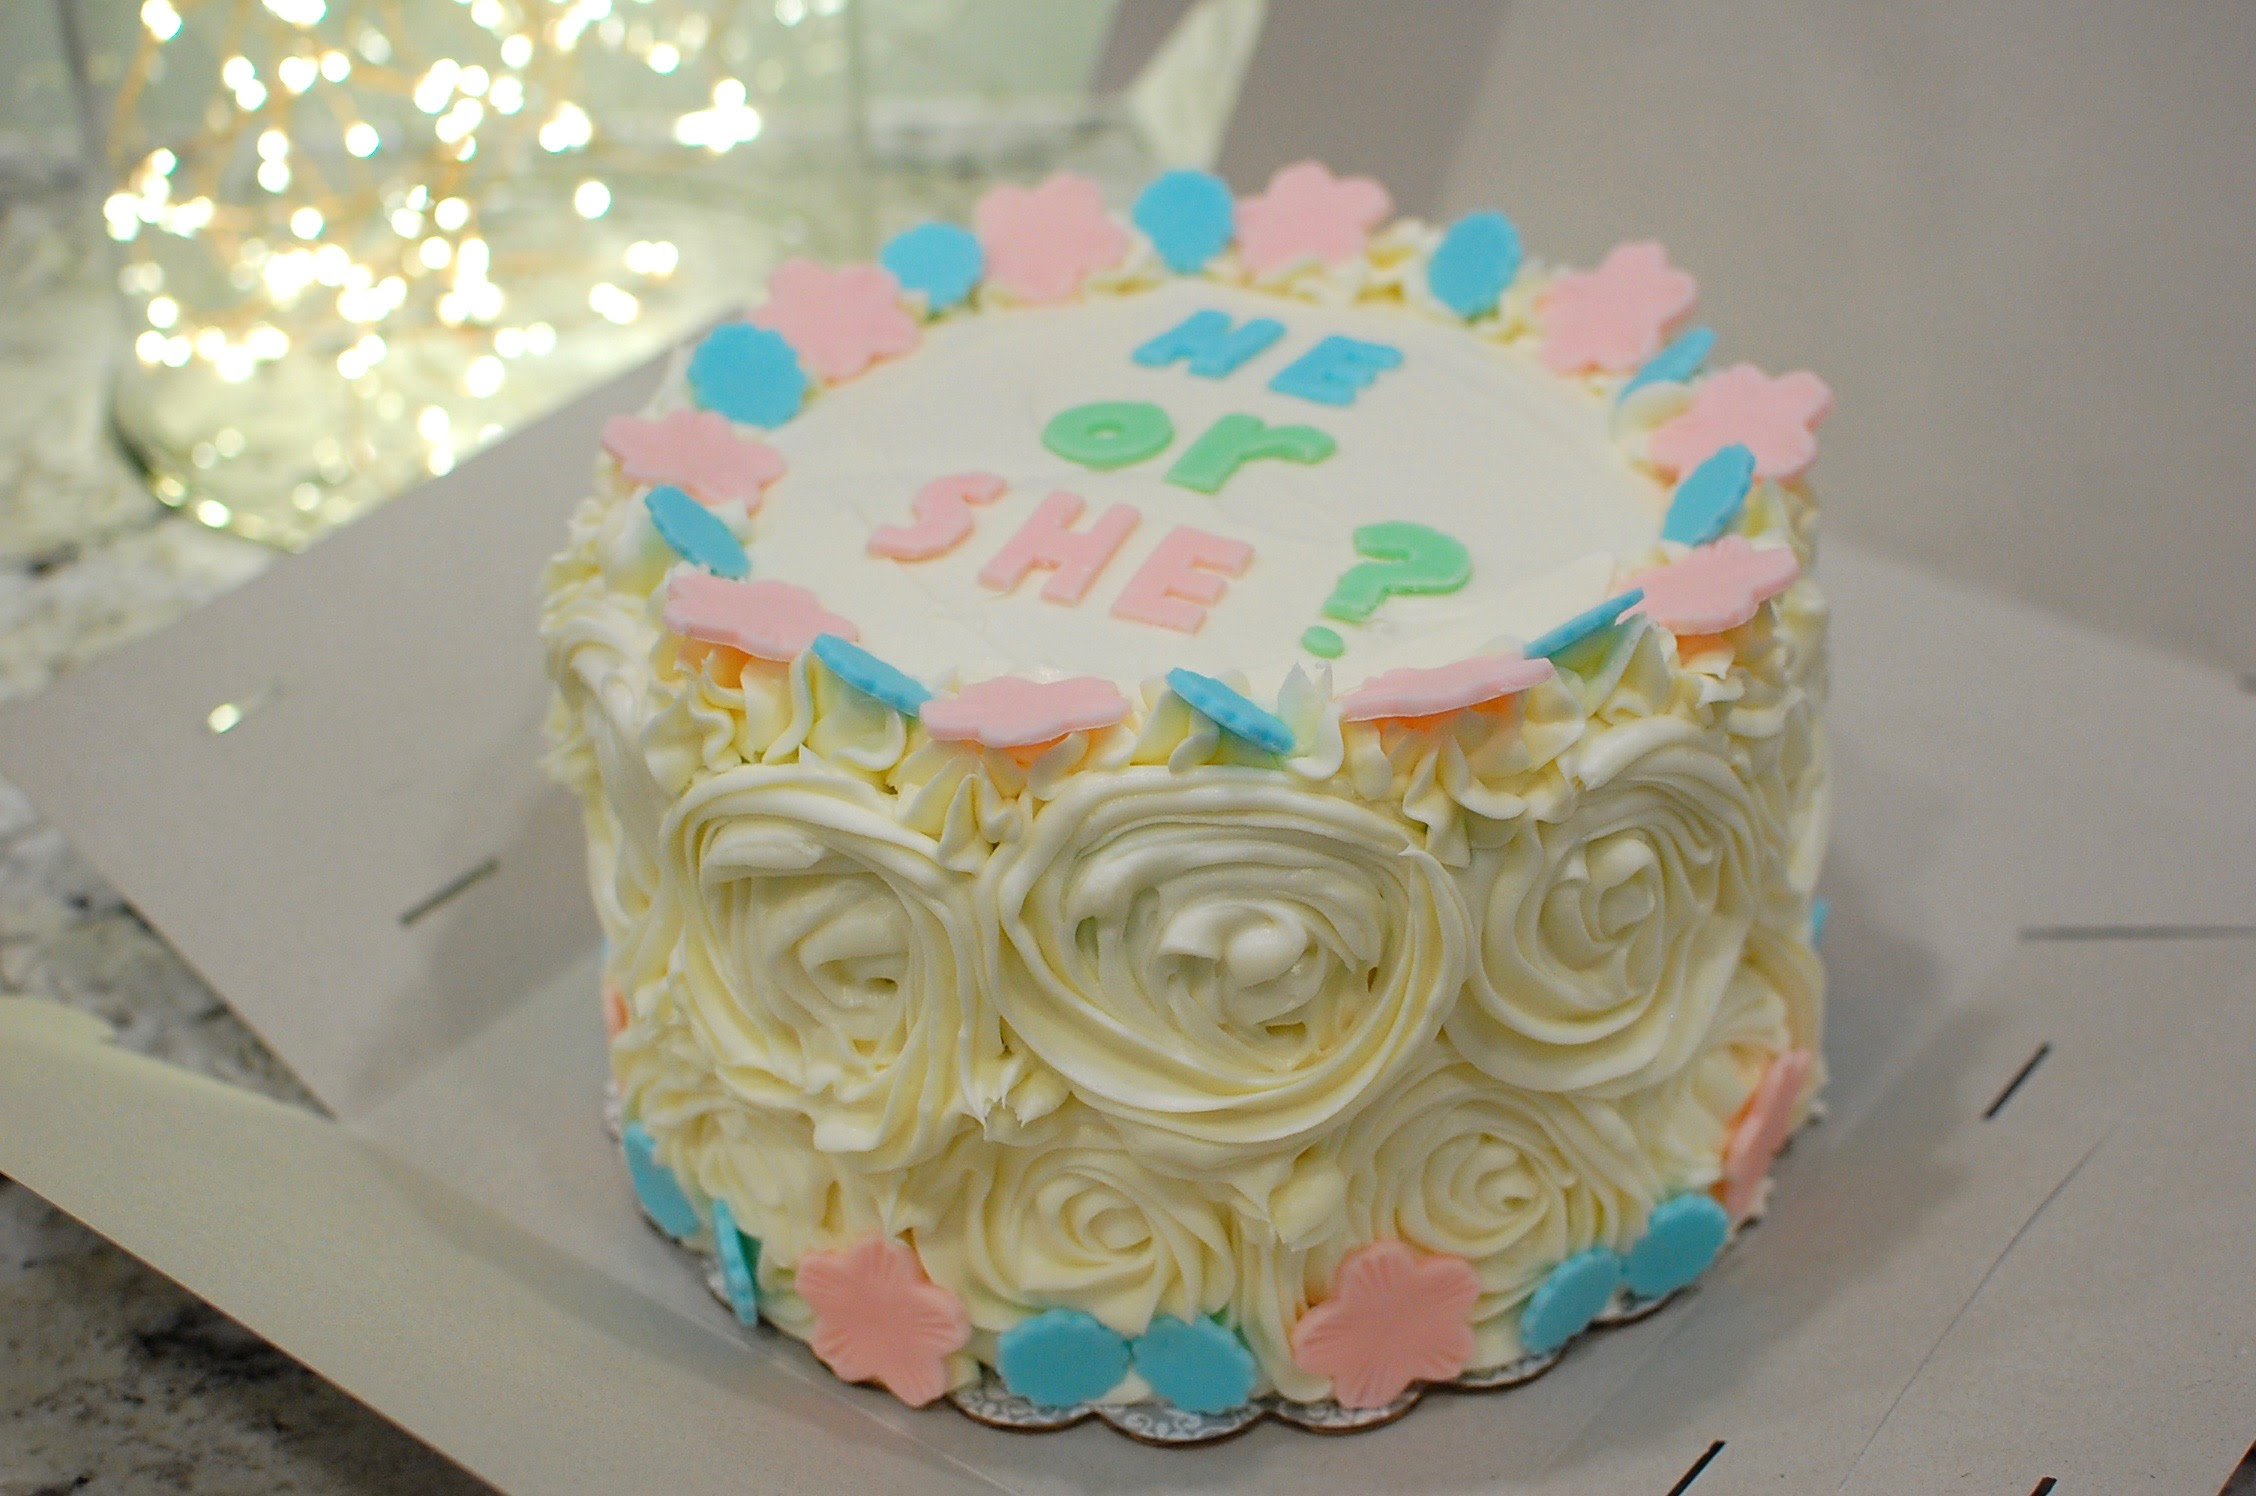 Ombré Blue Or Pink Baby Shower Gender Reveal Cake The 350 Degree